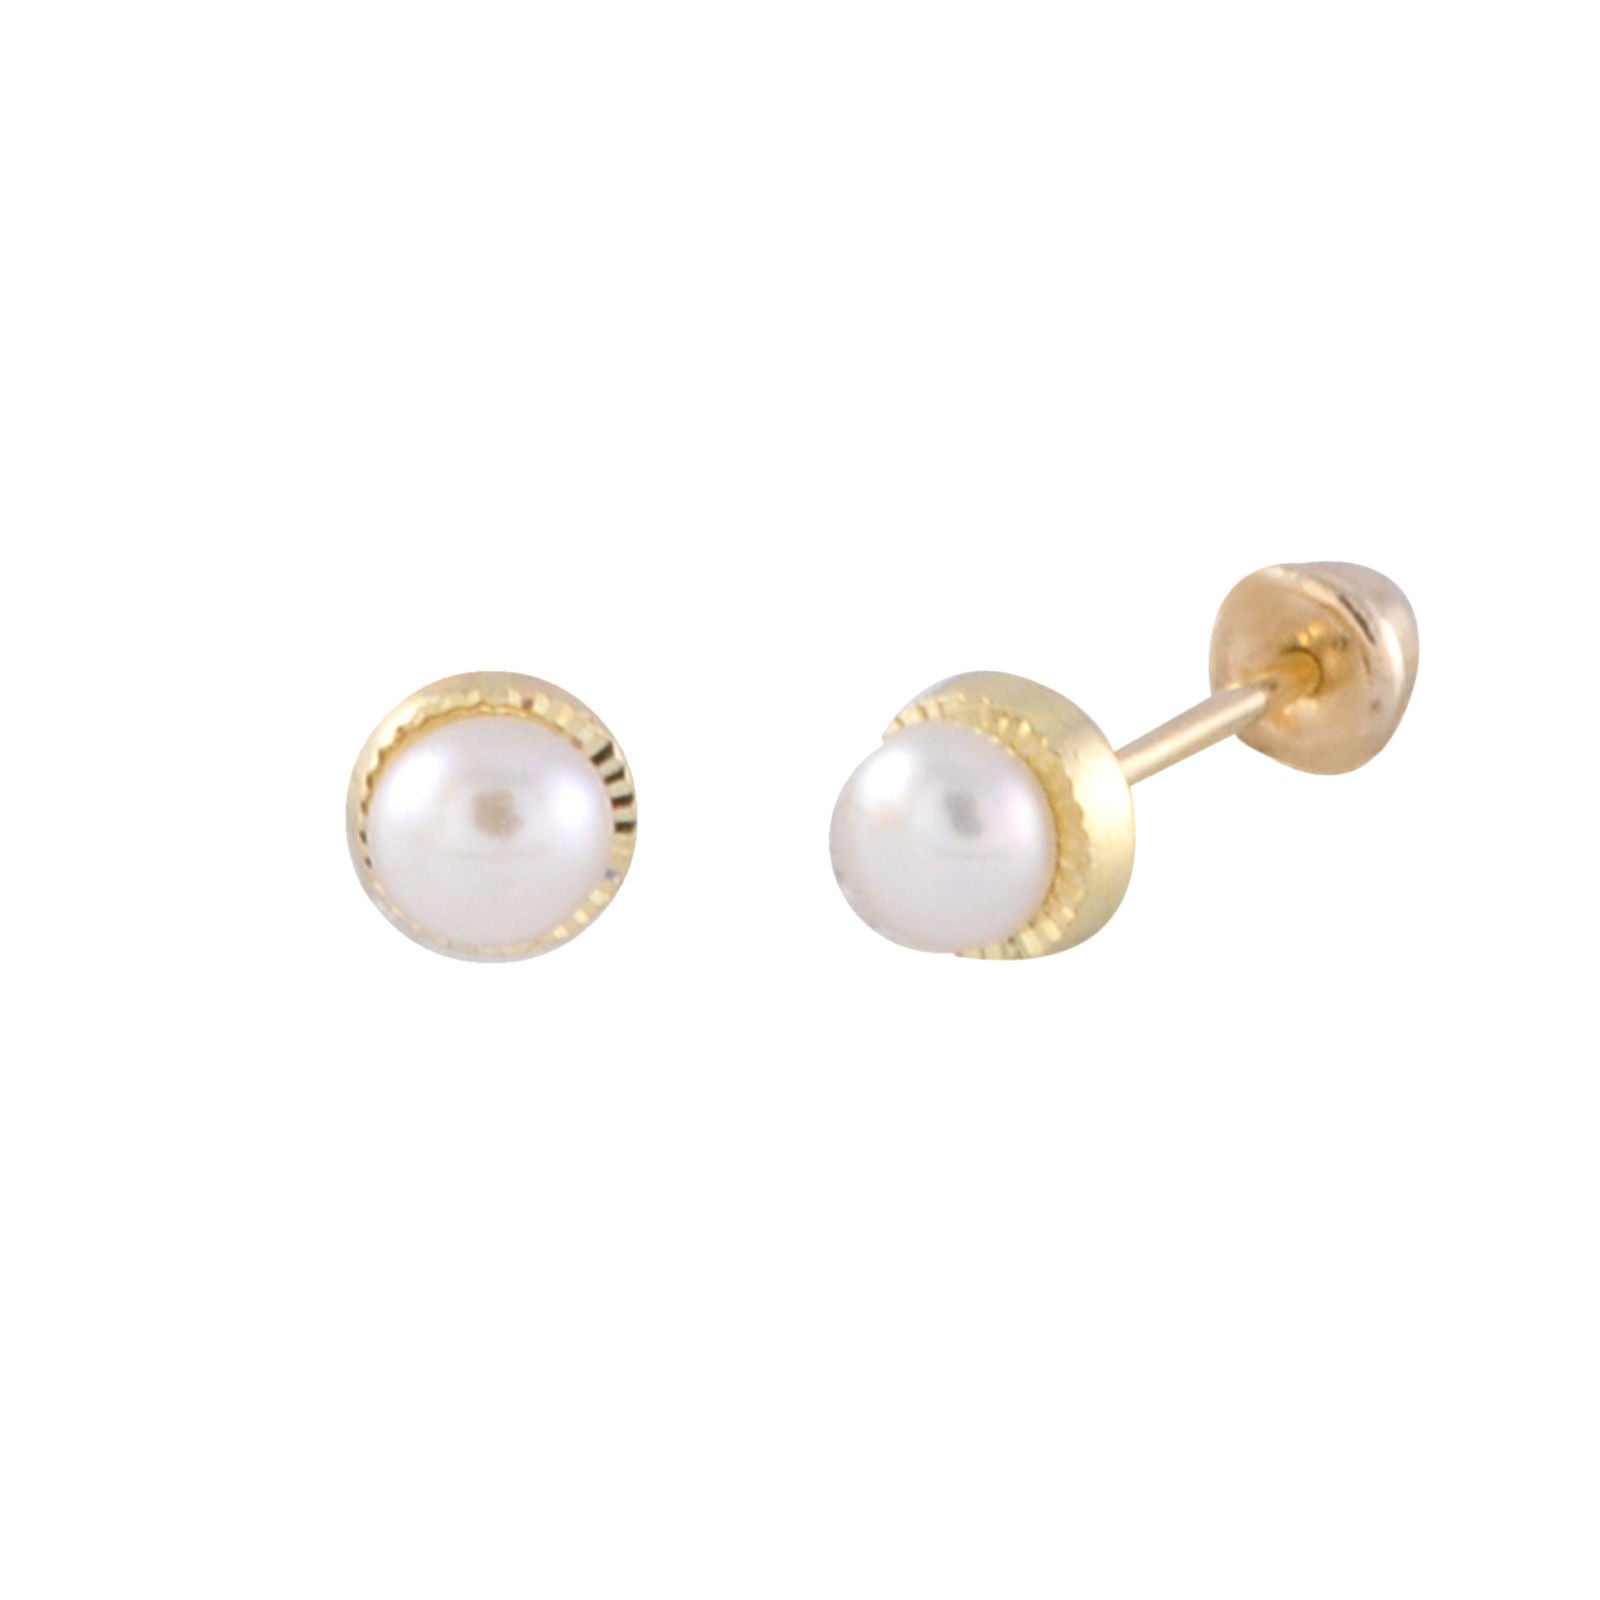 gallery lyst white pearl medium product earrings balenciaga normal stud in jewelry